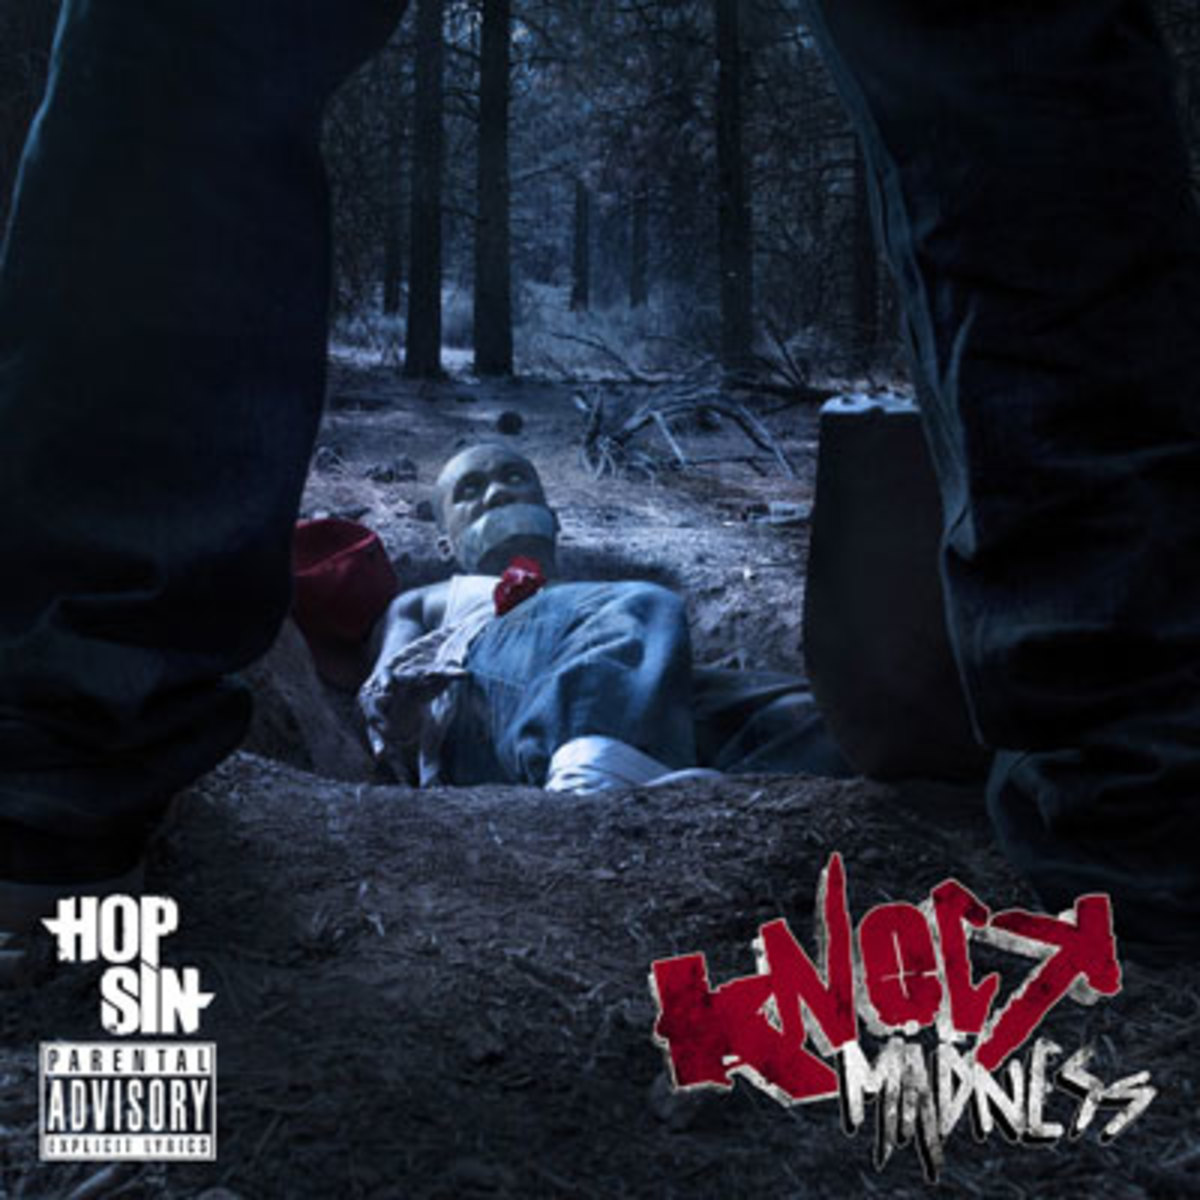 hopsin-knockmadness.jpg